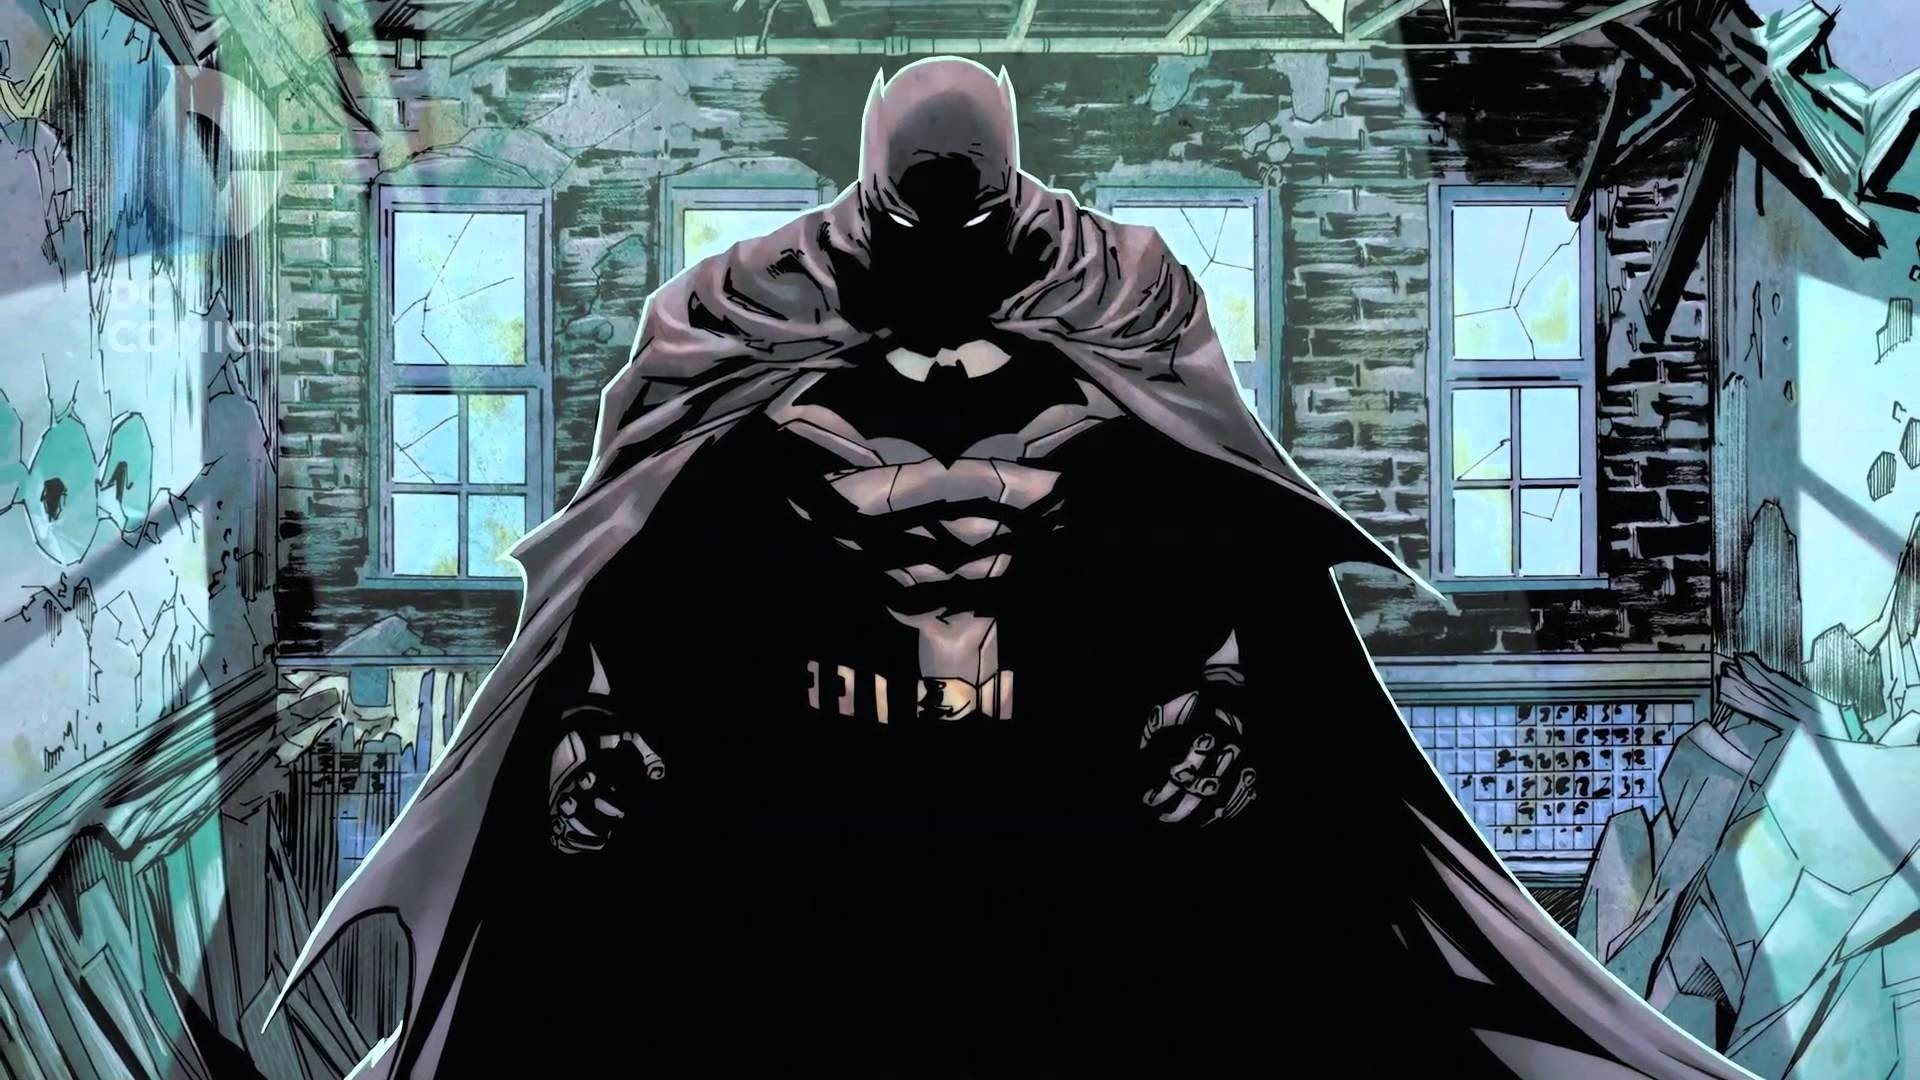 10 Latest Frank Miller Batman Wallpaper FULL HD 1080p For PC Desktop